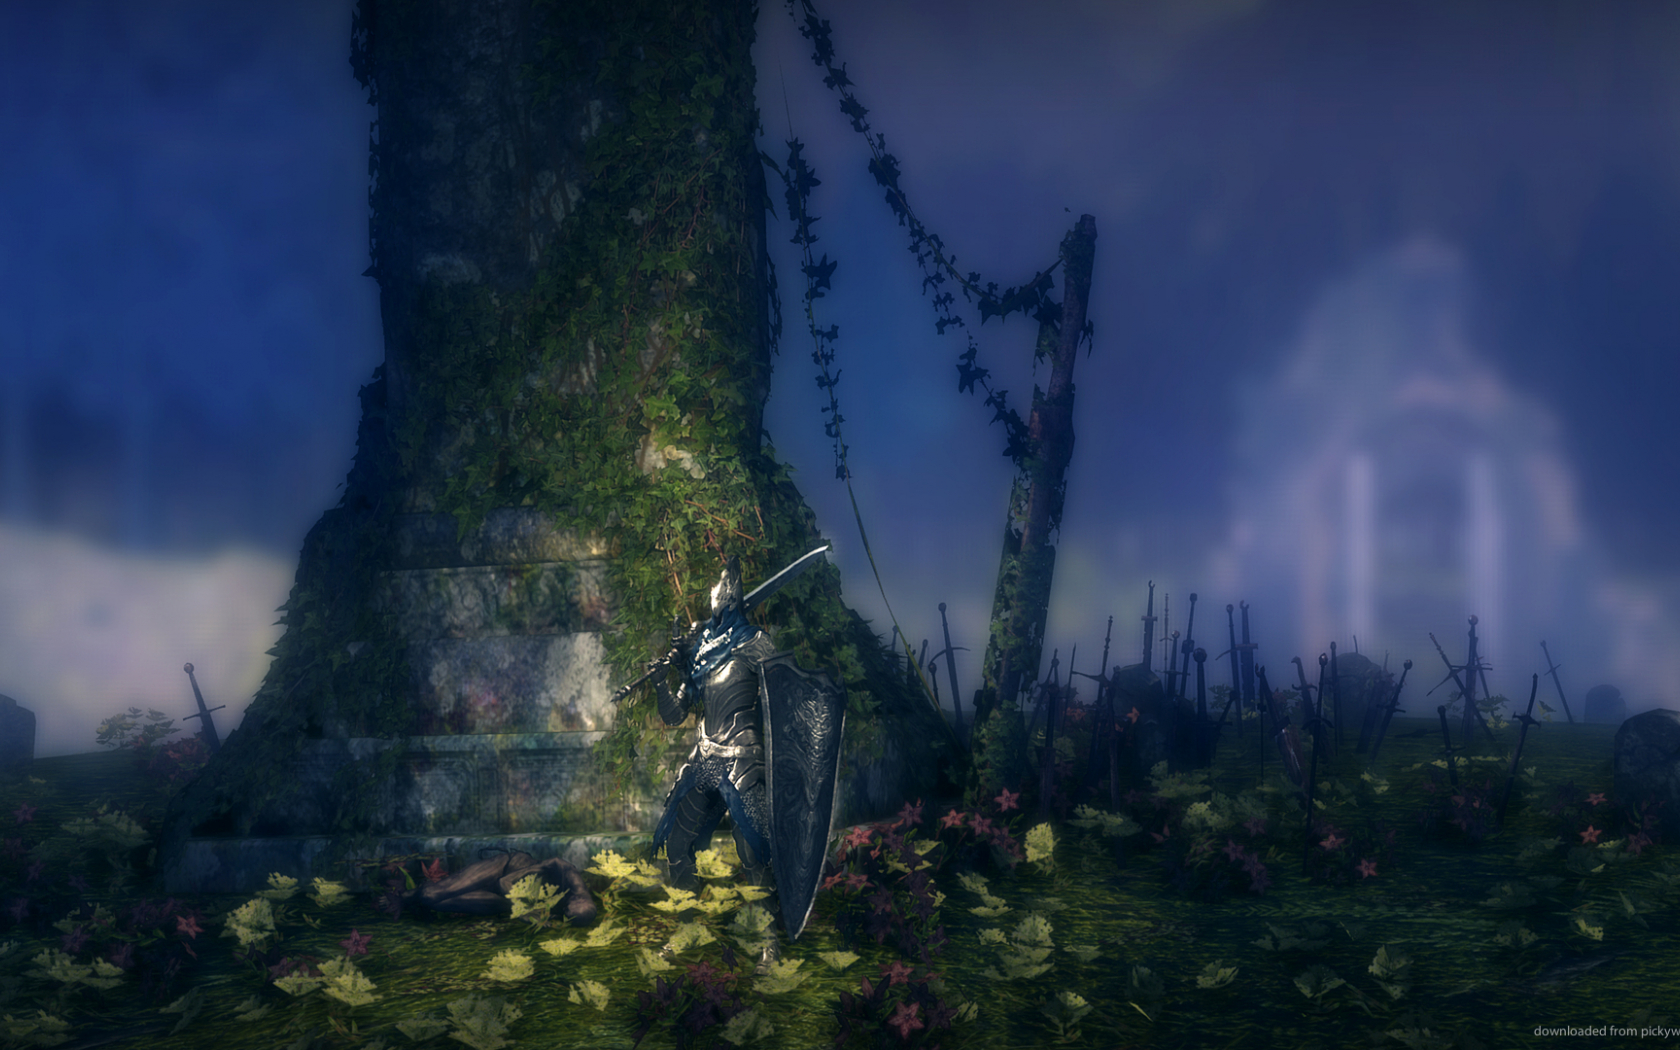 Free Download Dark Souls Posing Near Tree Picture 1920x1080 For